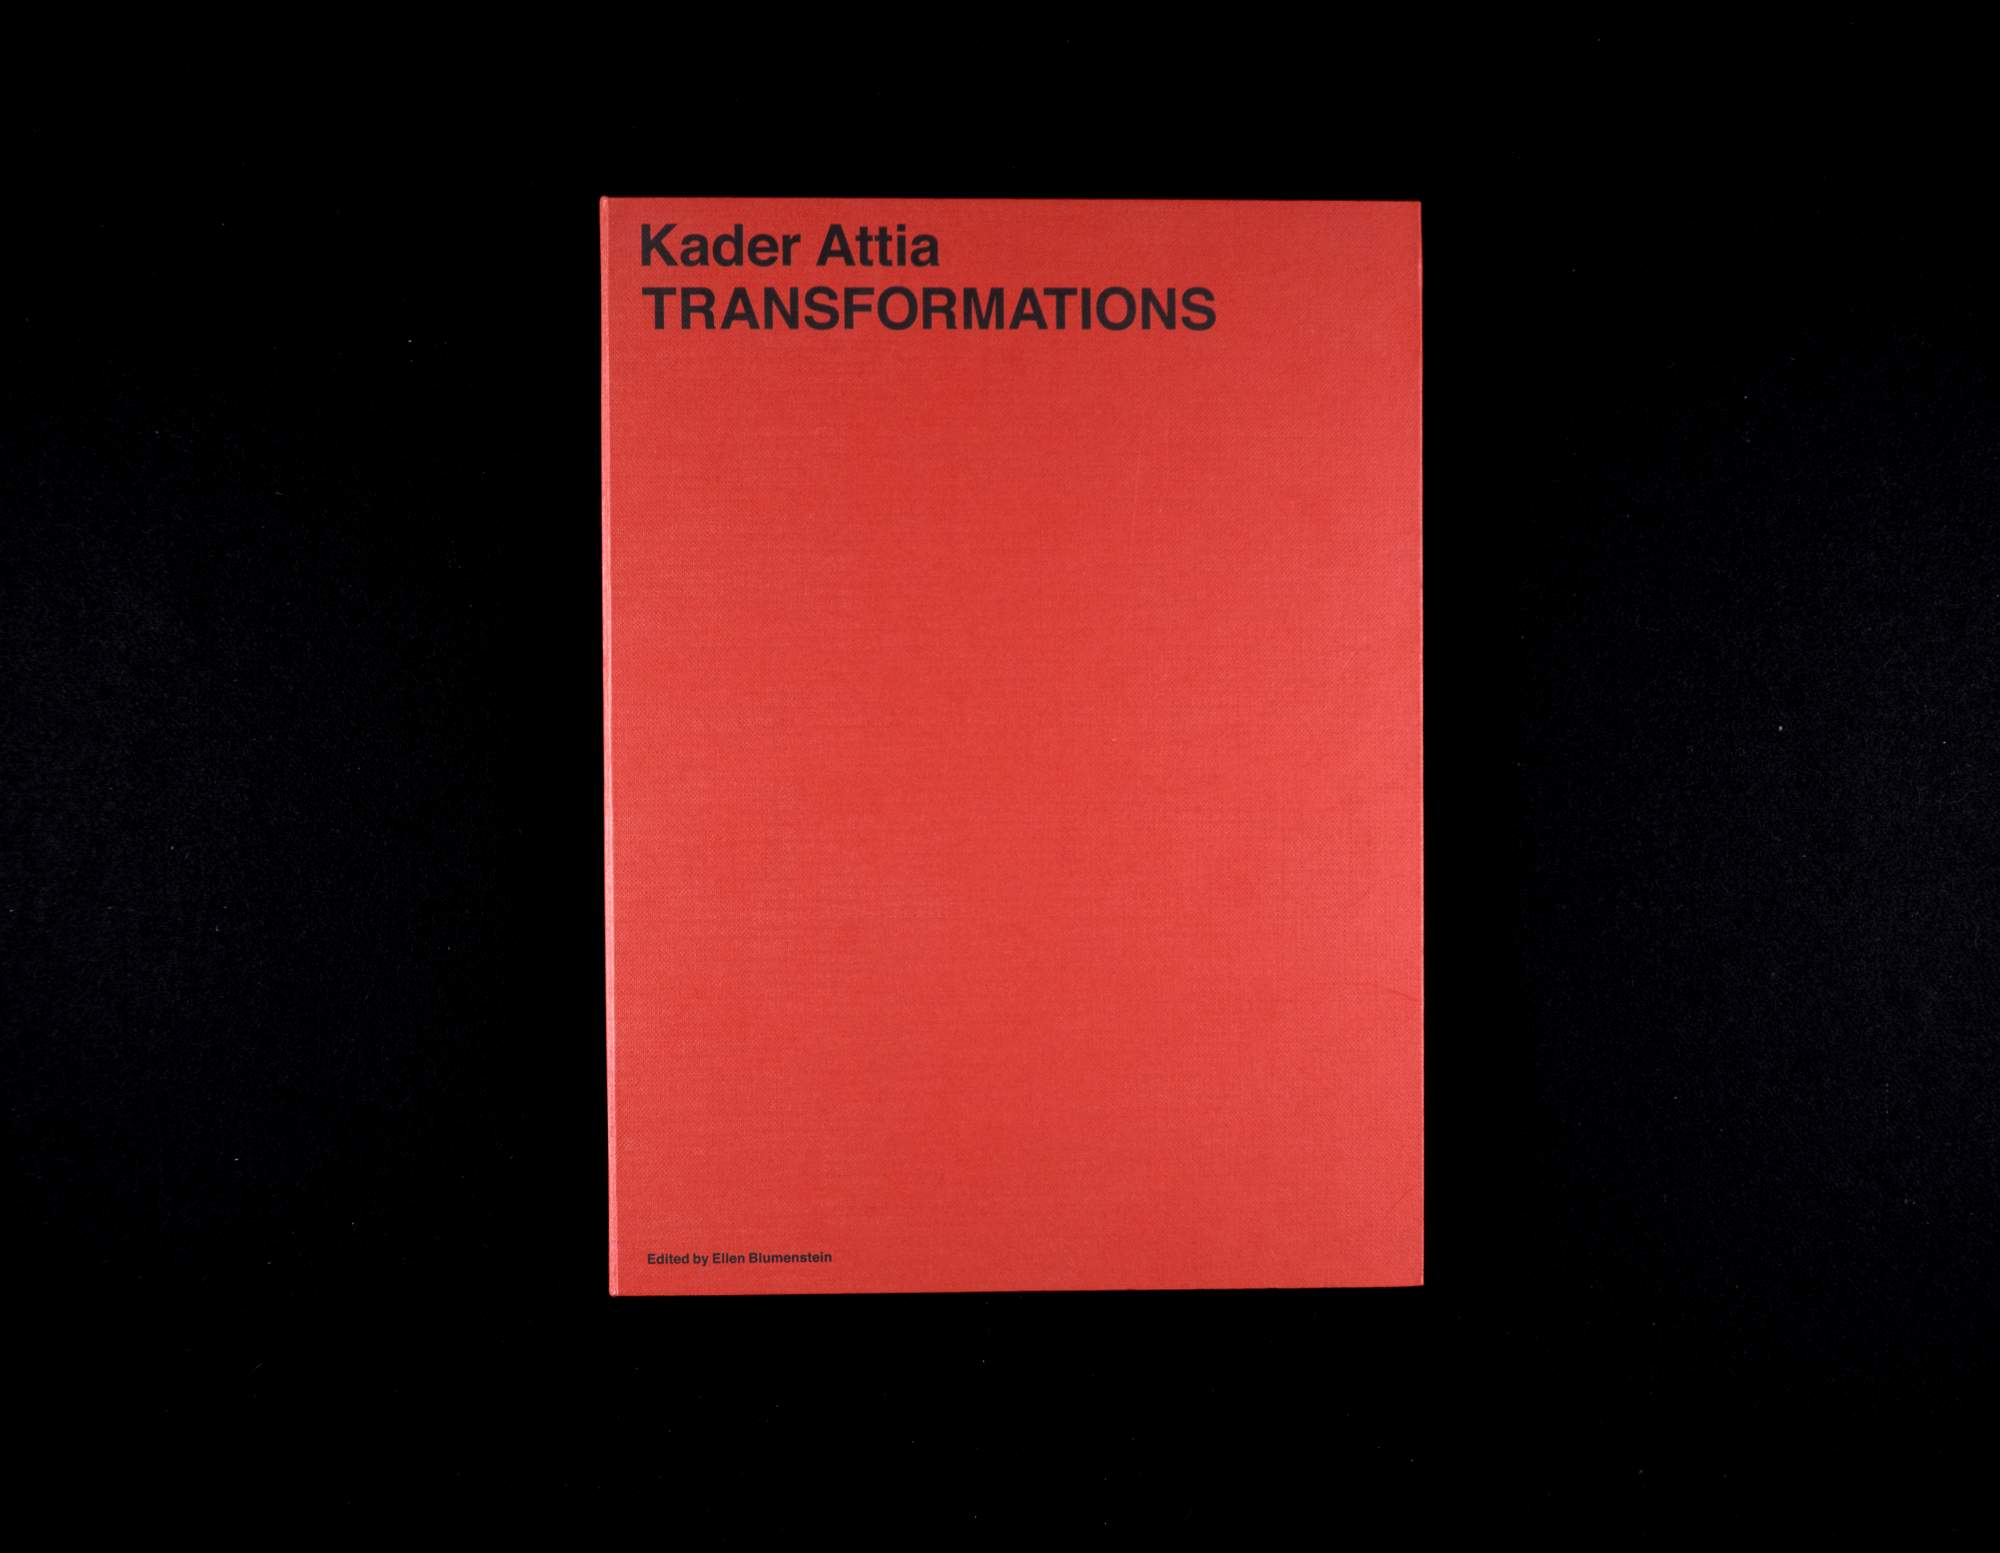 Transformations Spector Books